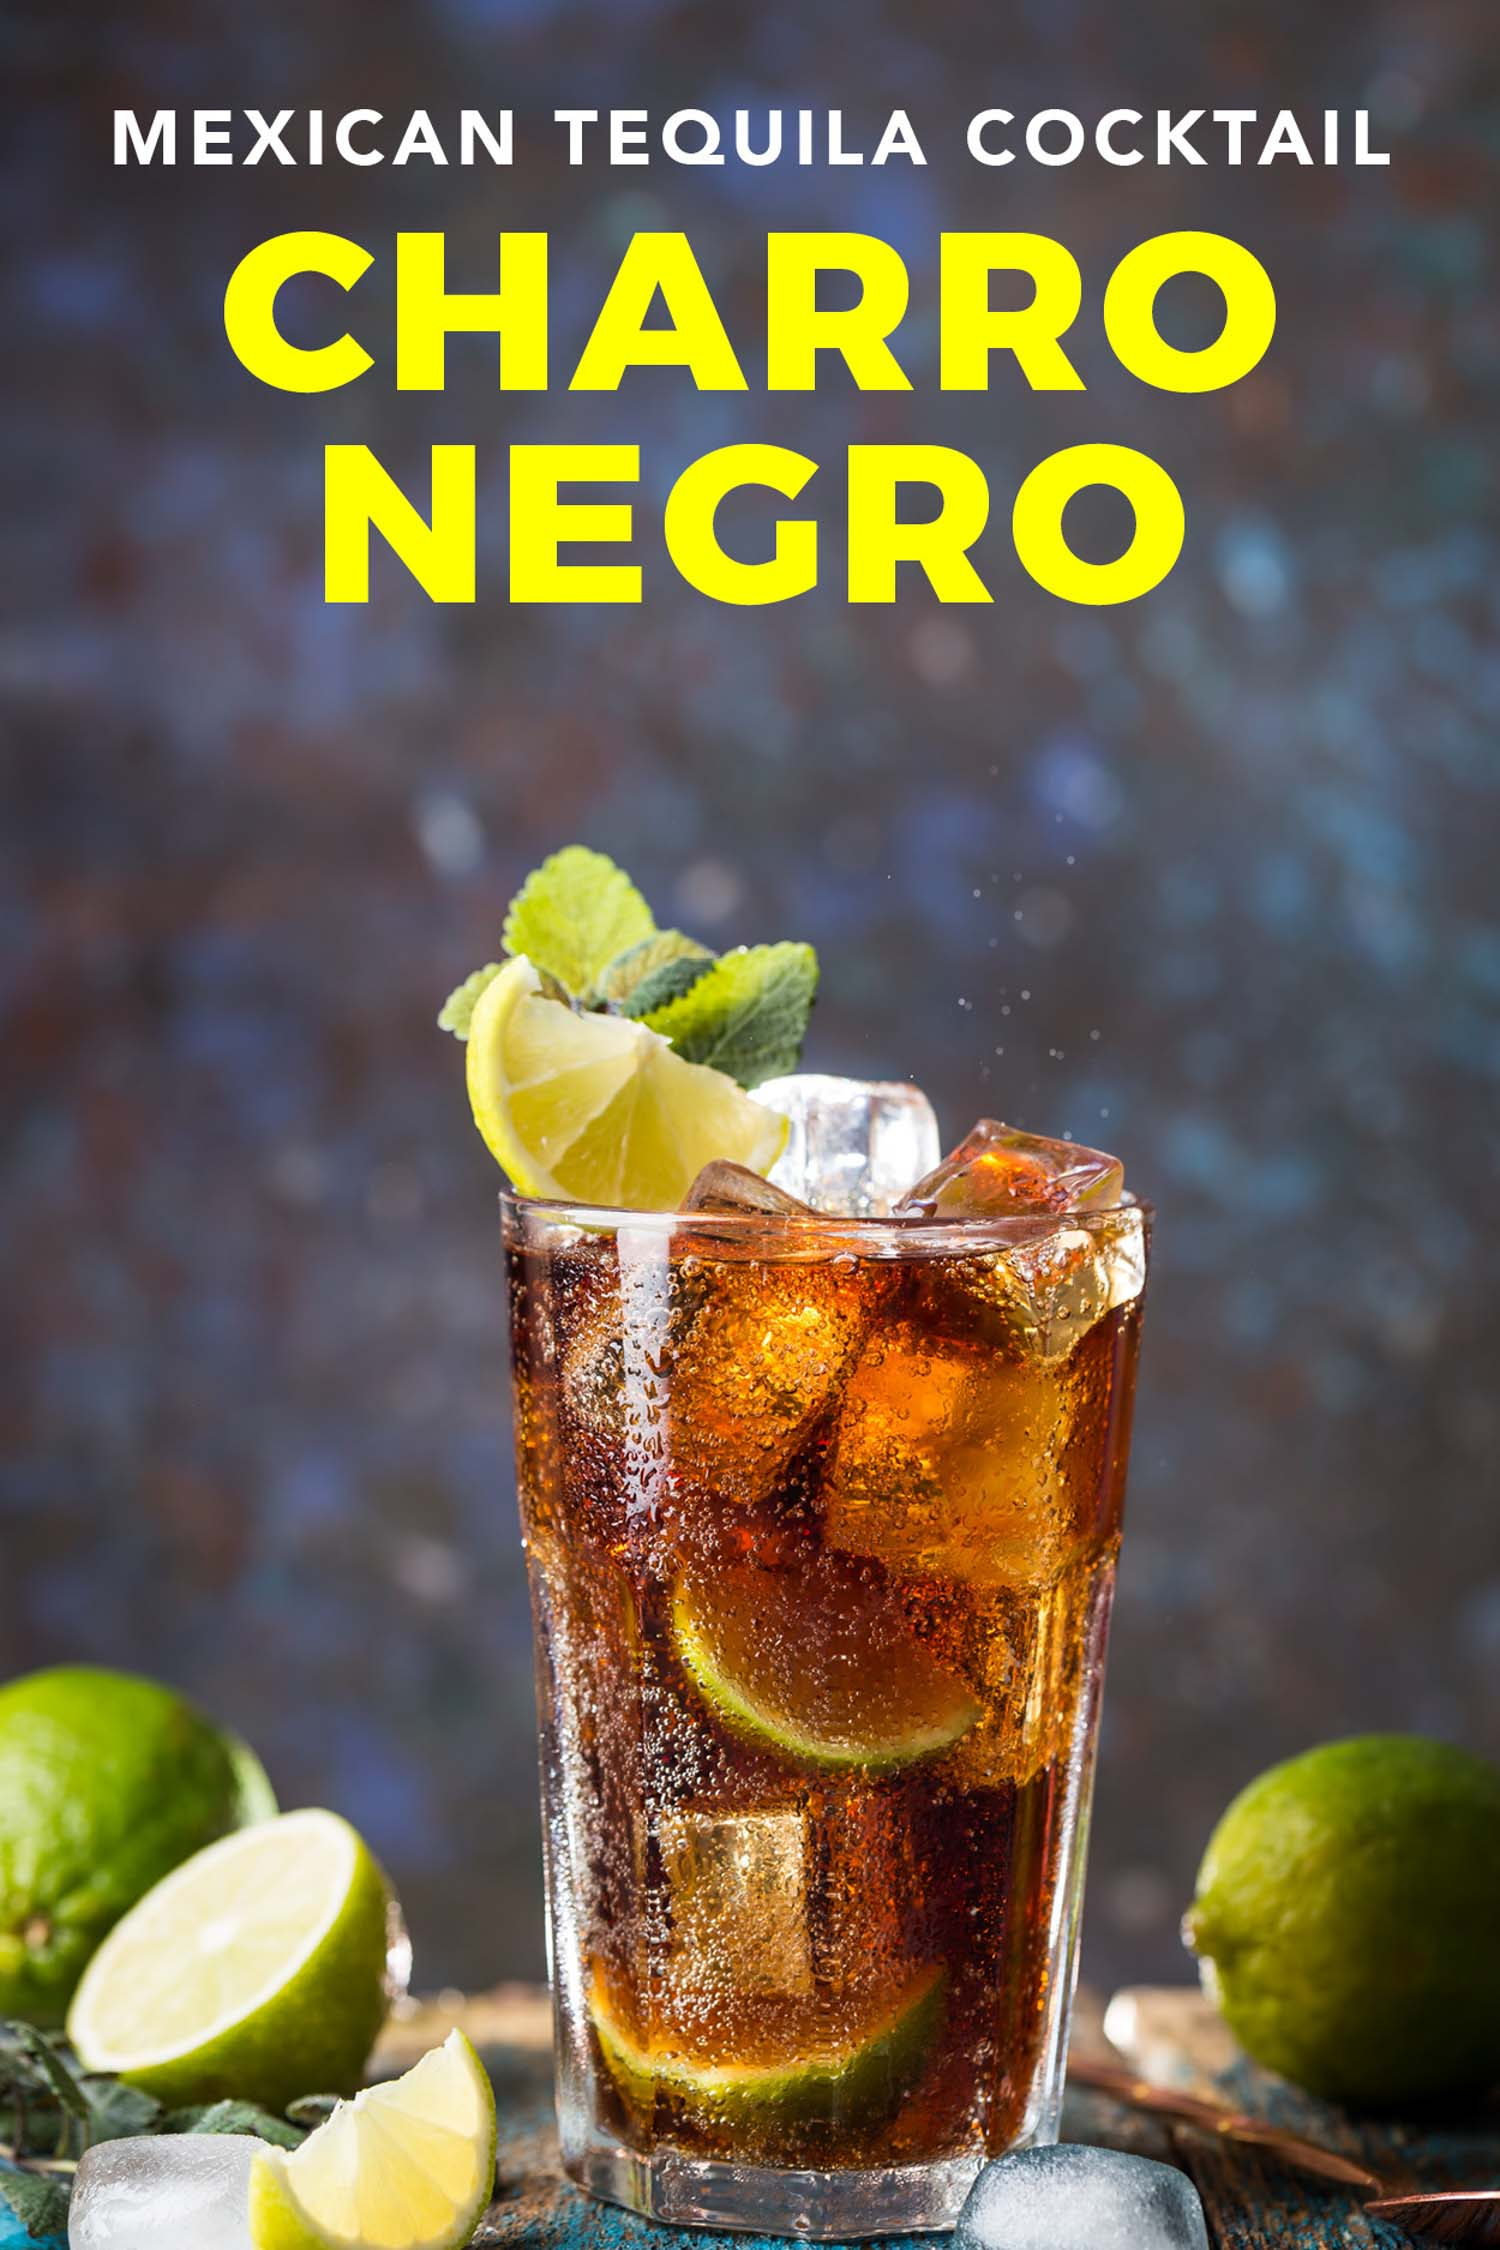 Charro negro Mexican cocktail with limes on dark background and text